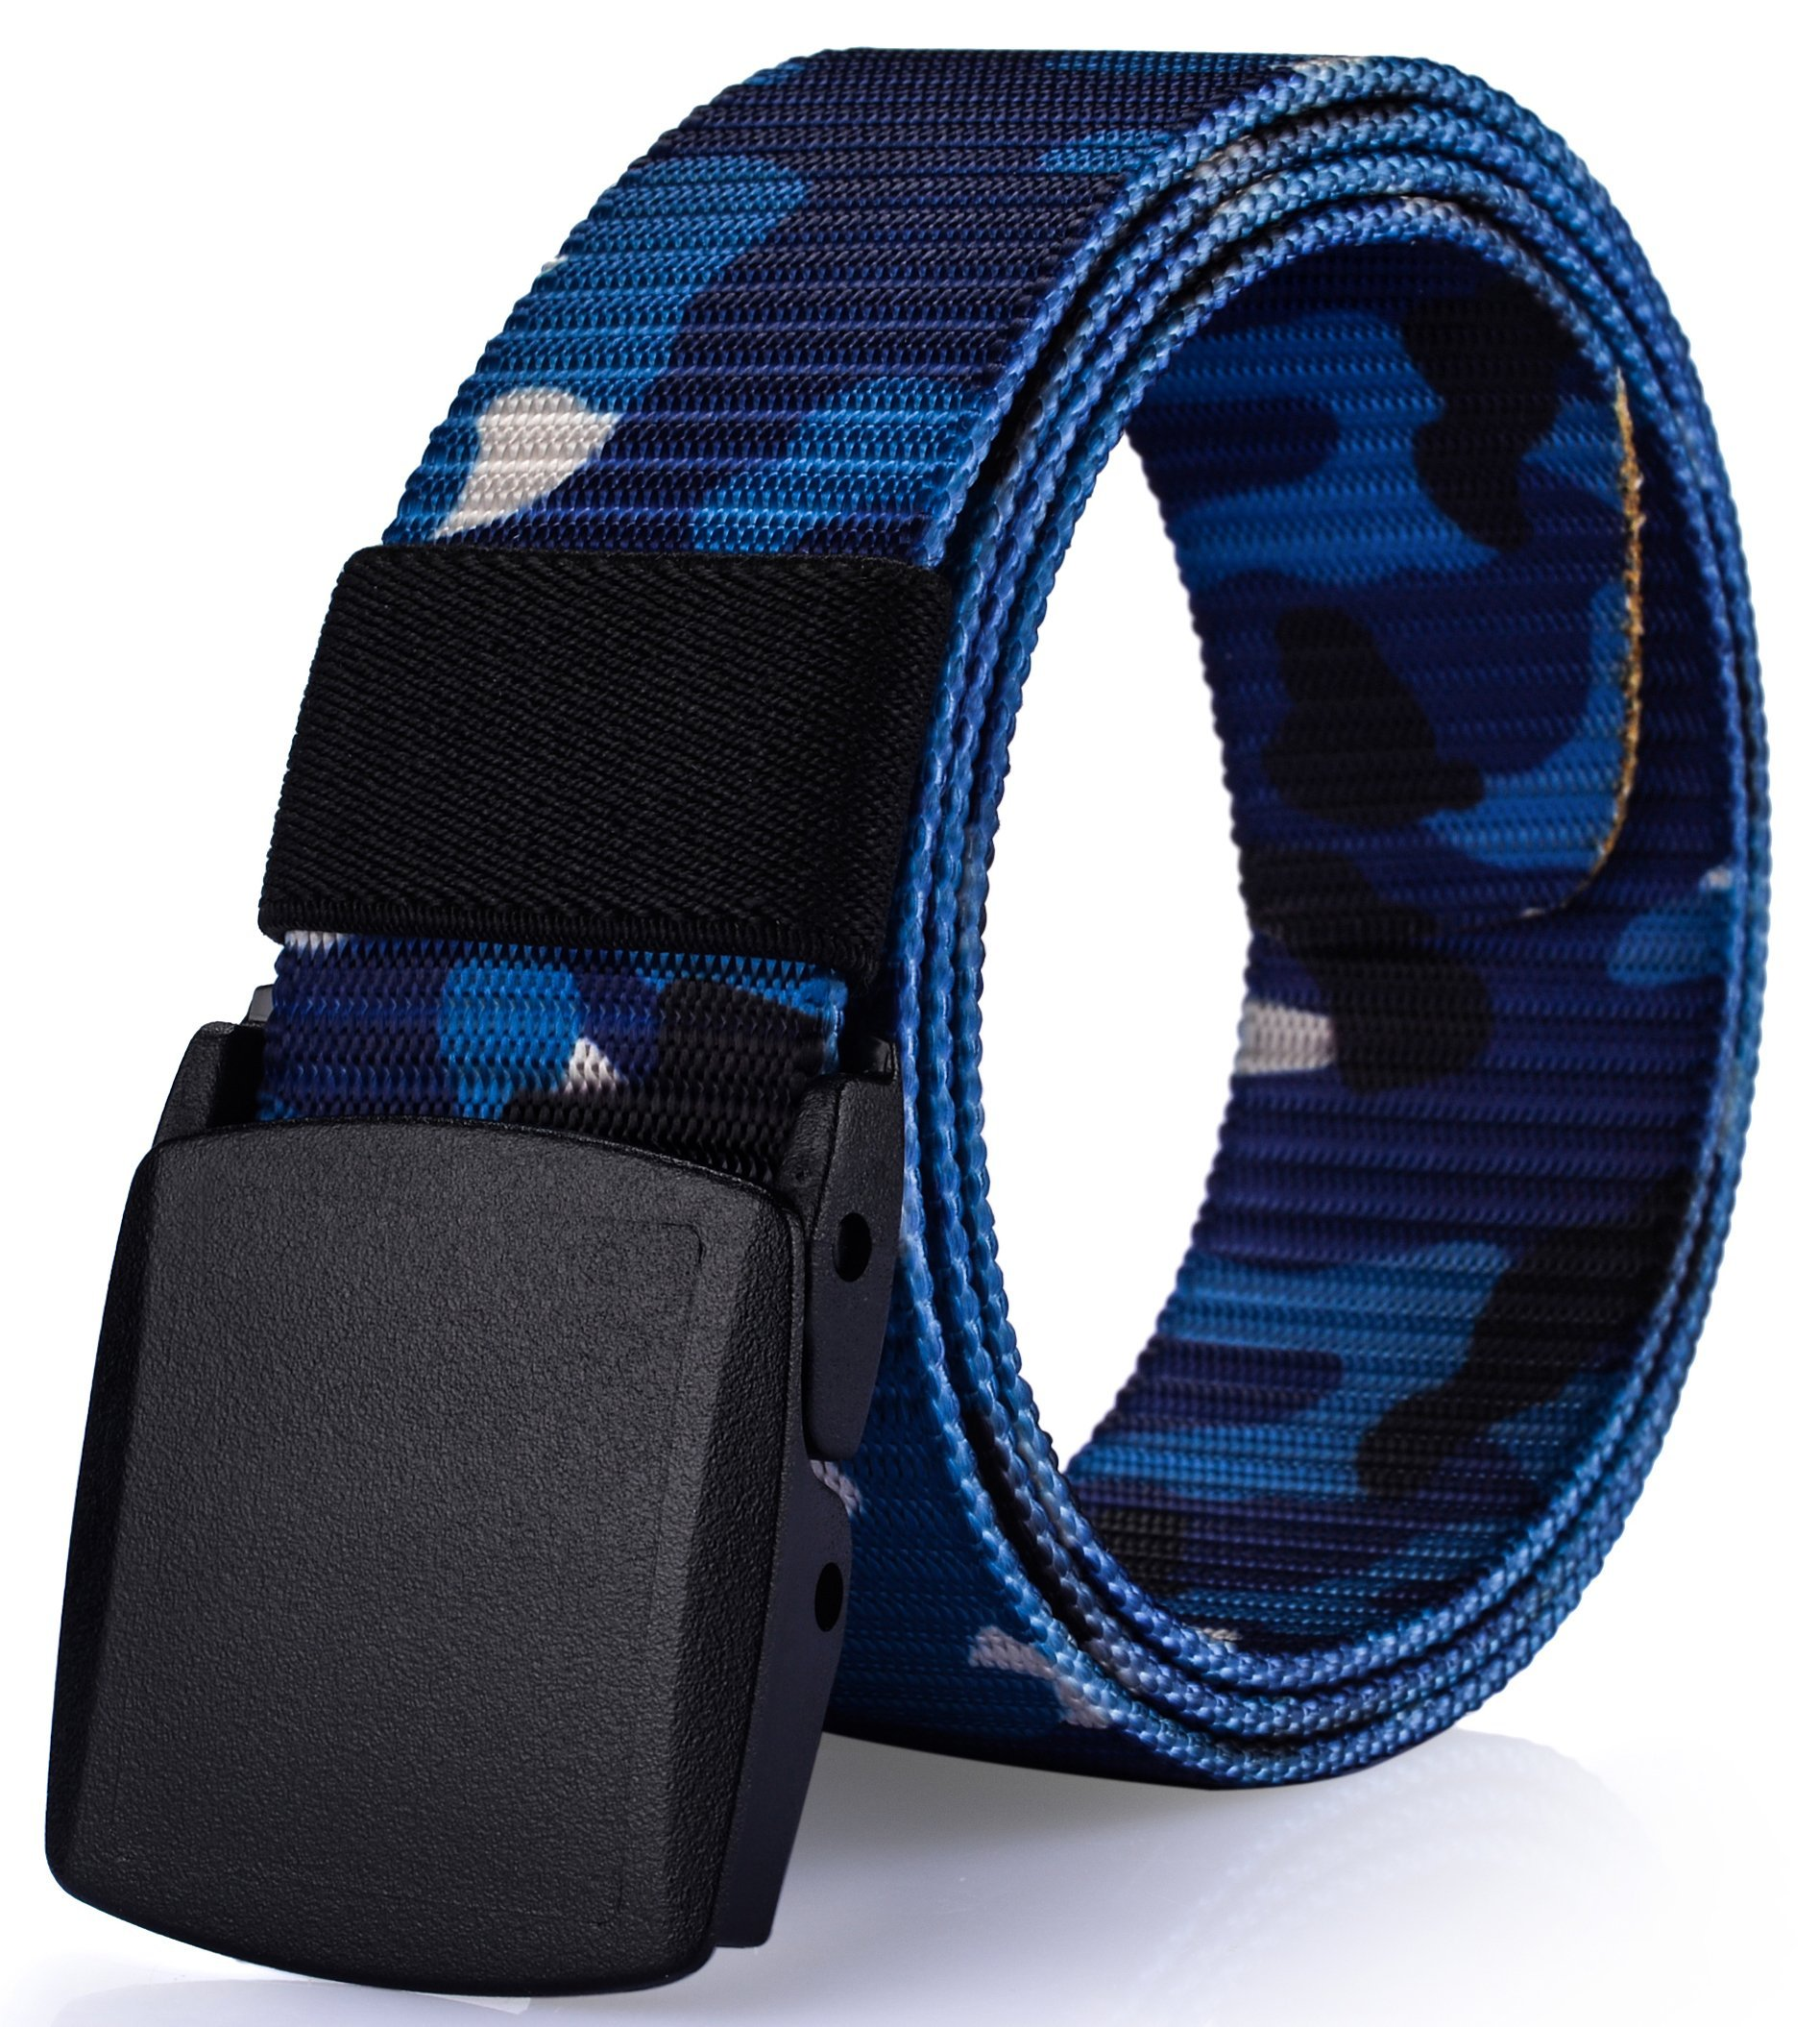 Ayli Men's Nylon Webbed Belt, No Metal Parts, Plastic Buckle, Quick Security Clearance, Casual Dress Belt, Style 6 Camouflage Blue - bt6a011bl